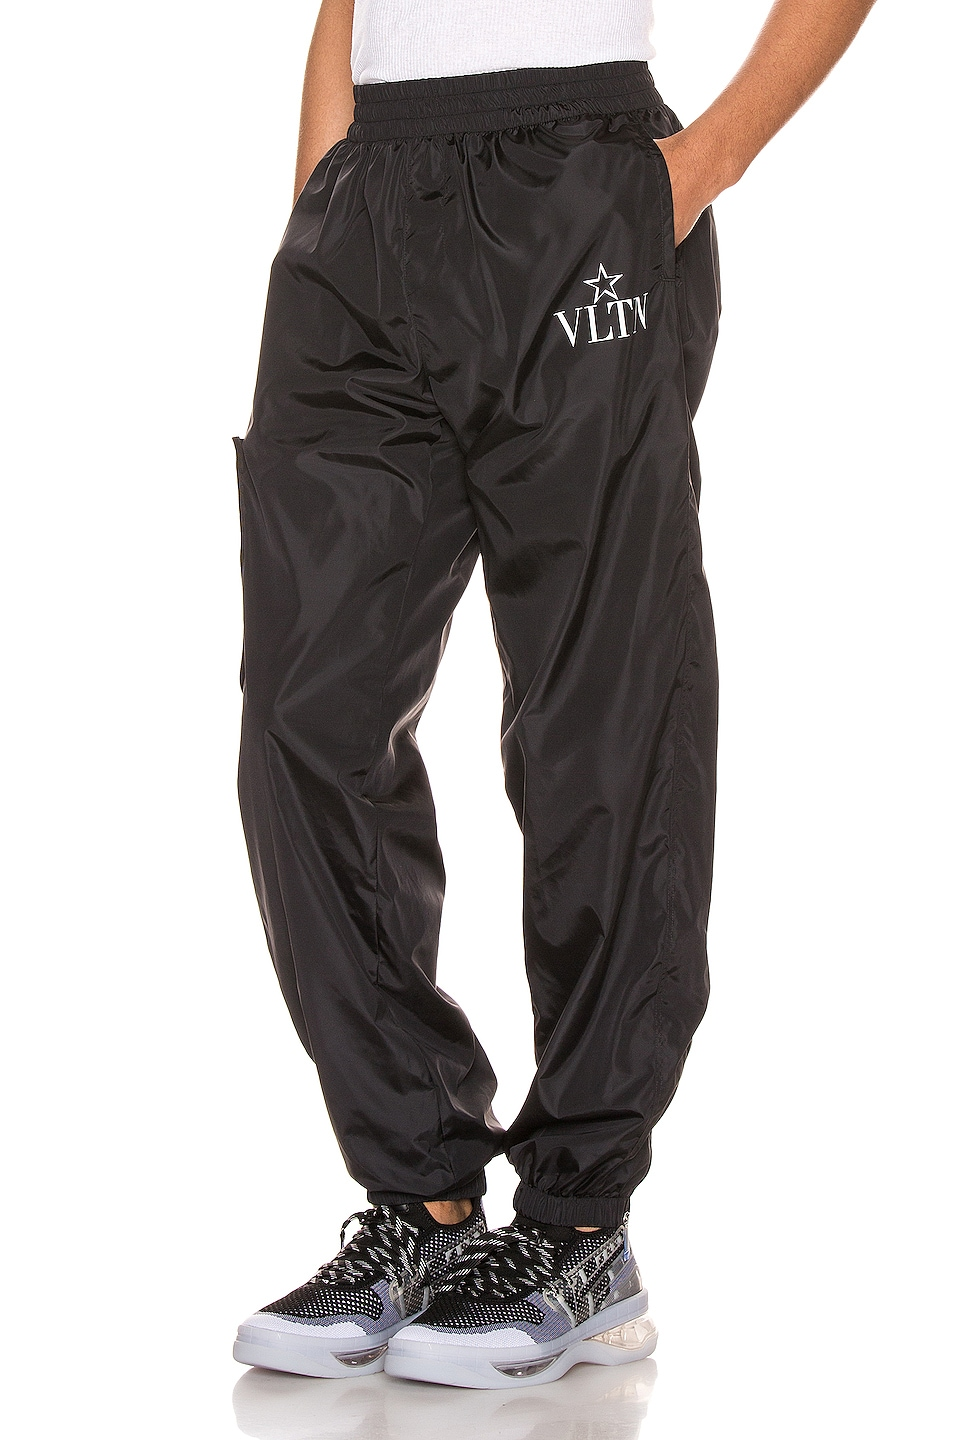 Image 1 of Valentino Cargo Pants in Black & White